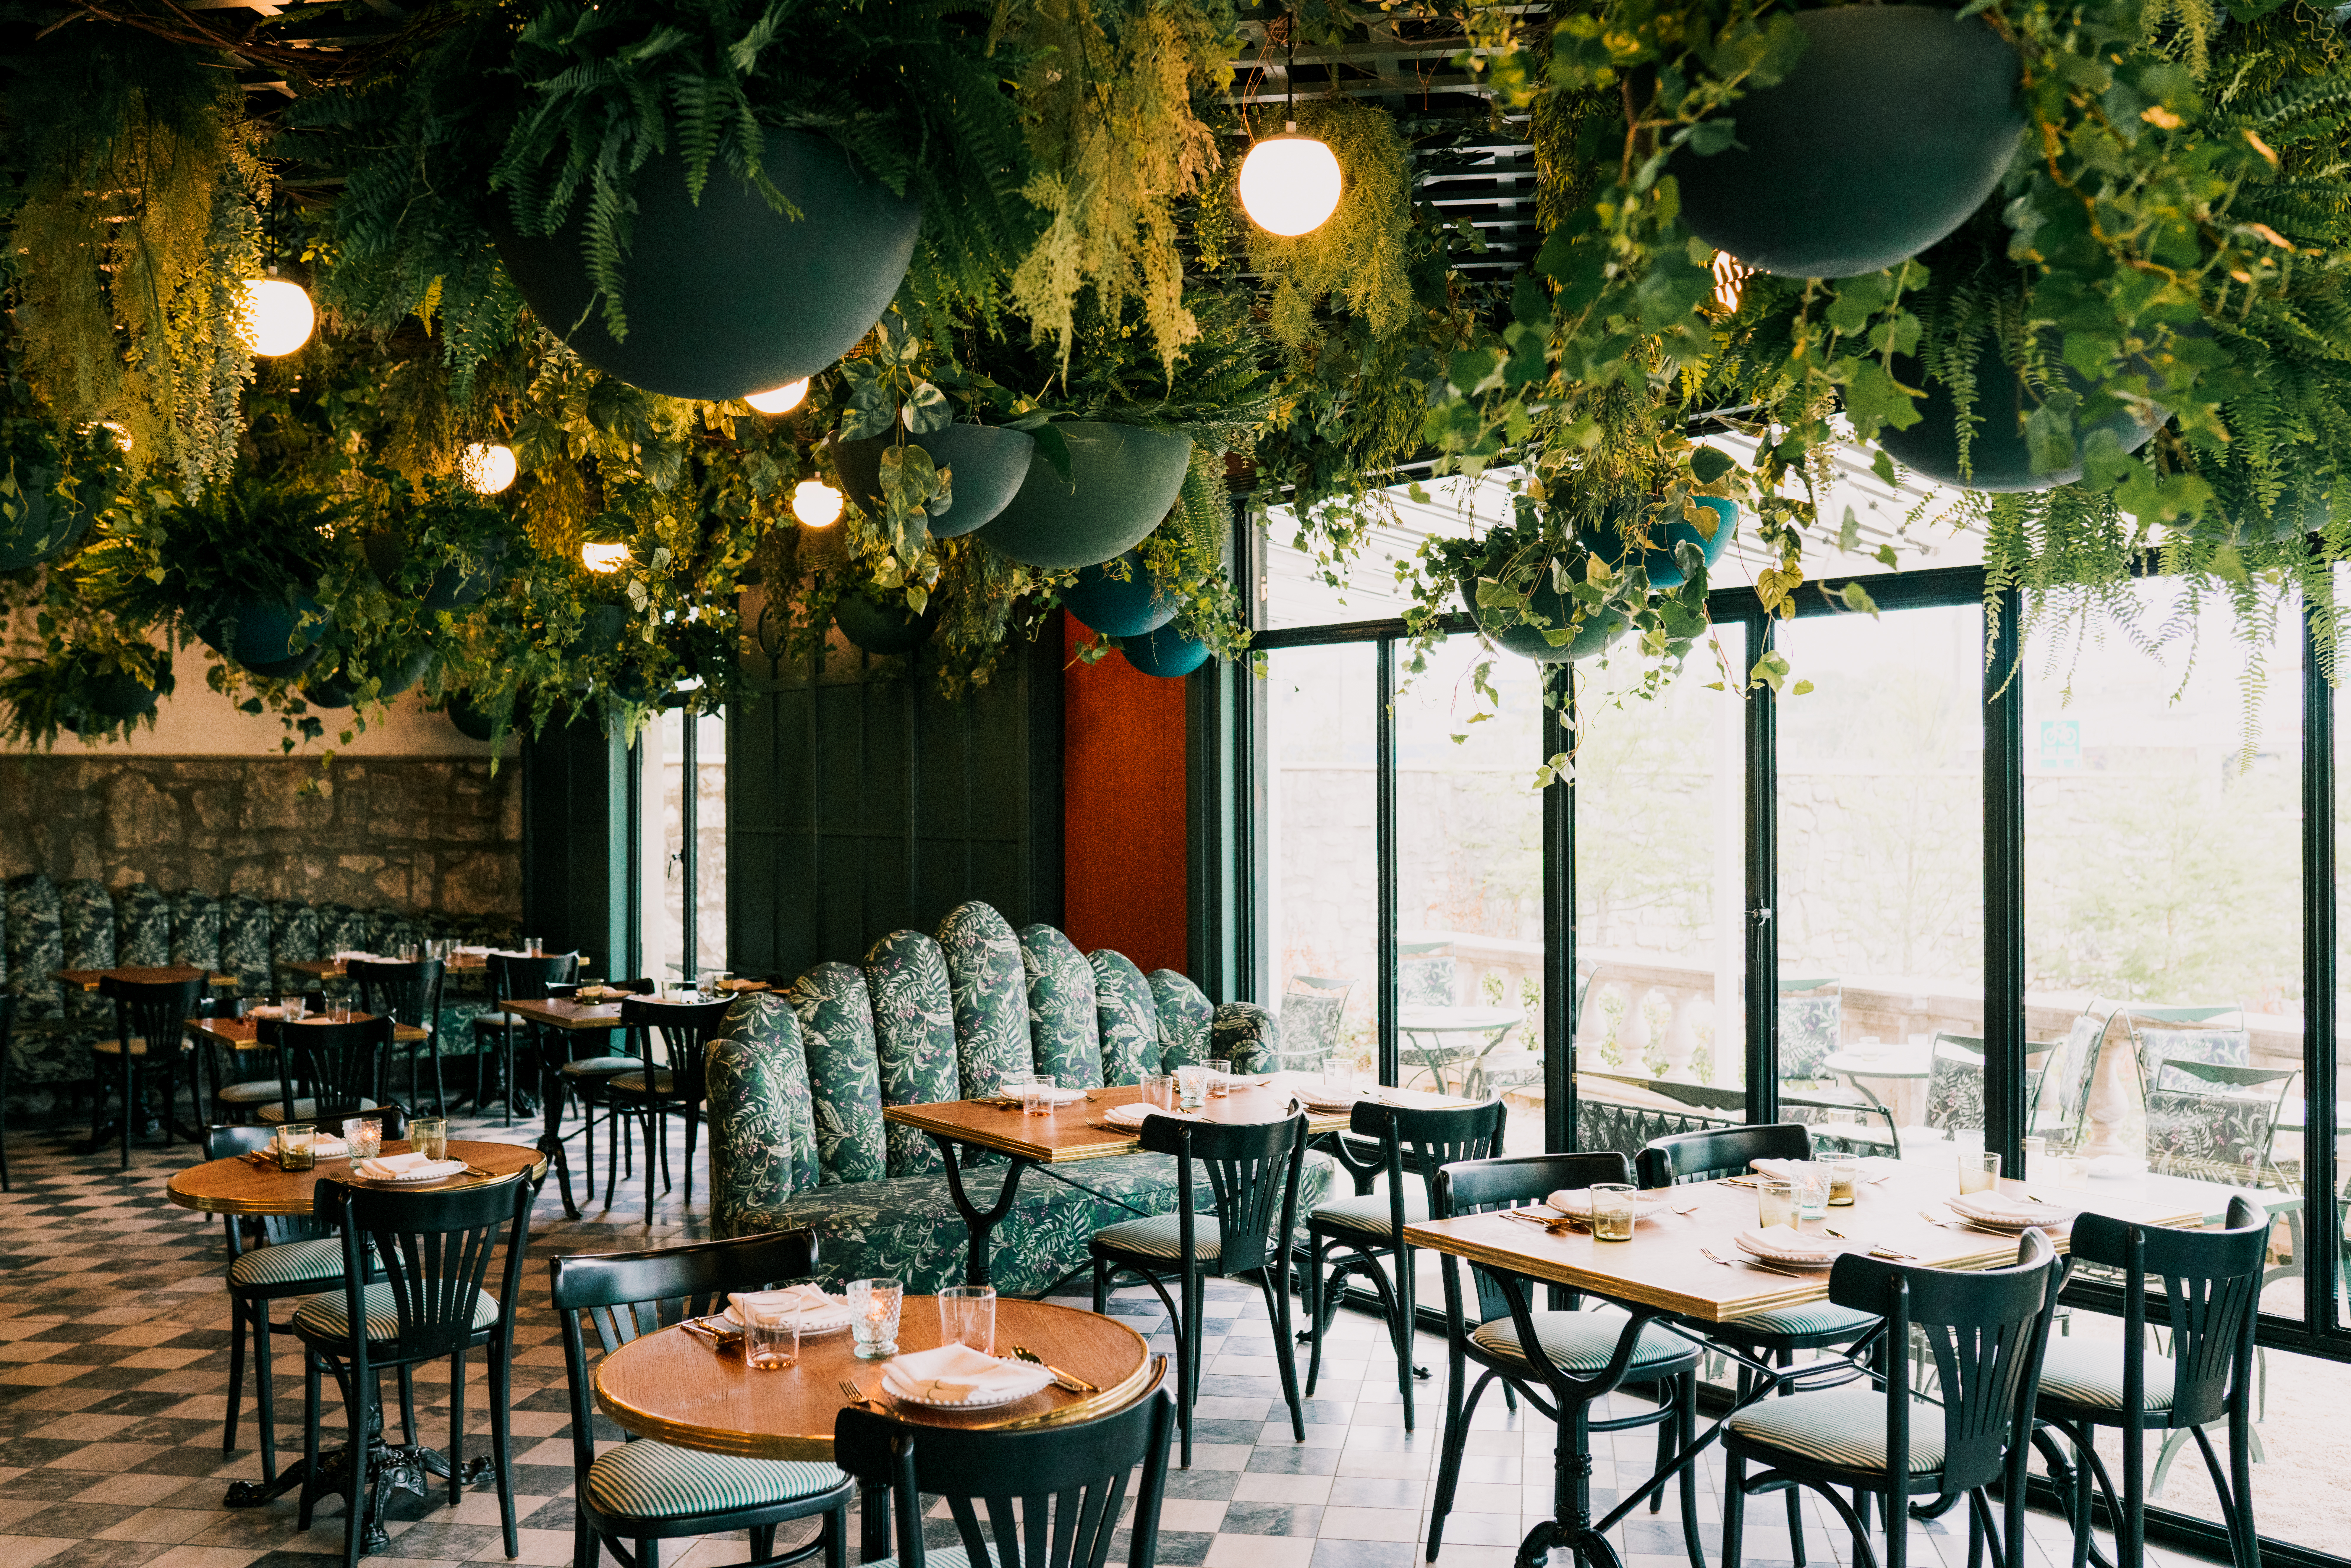 A lush canopy of houseplants hangs from the ceiling above tables in the Lutie's dining room.